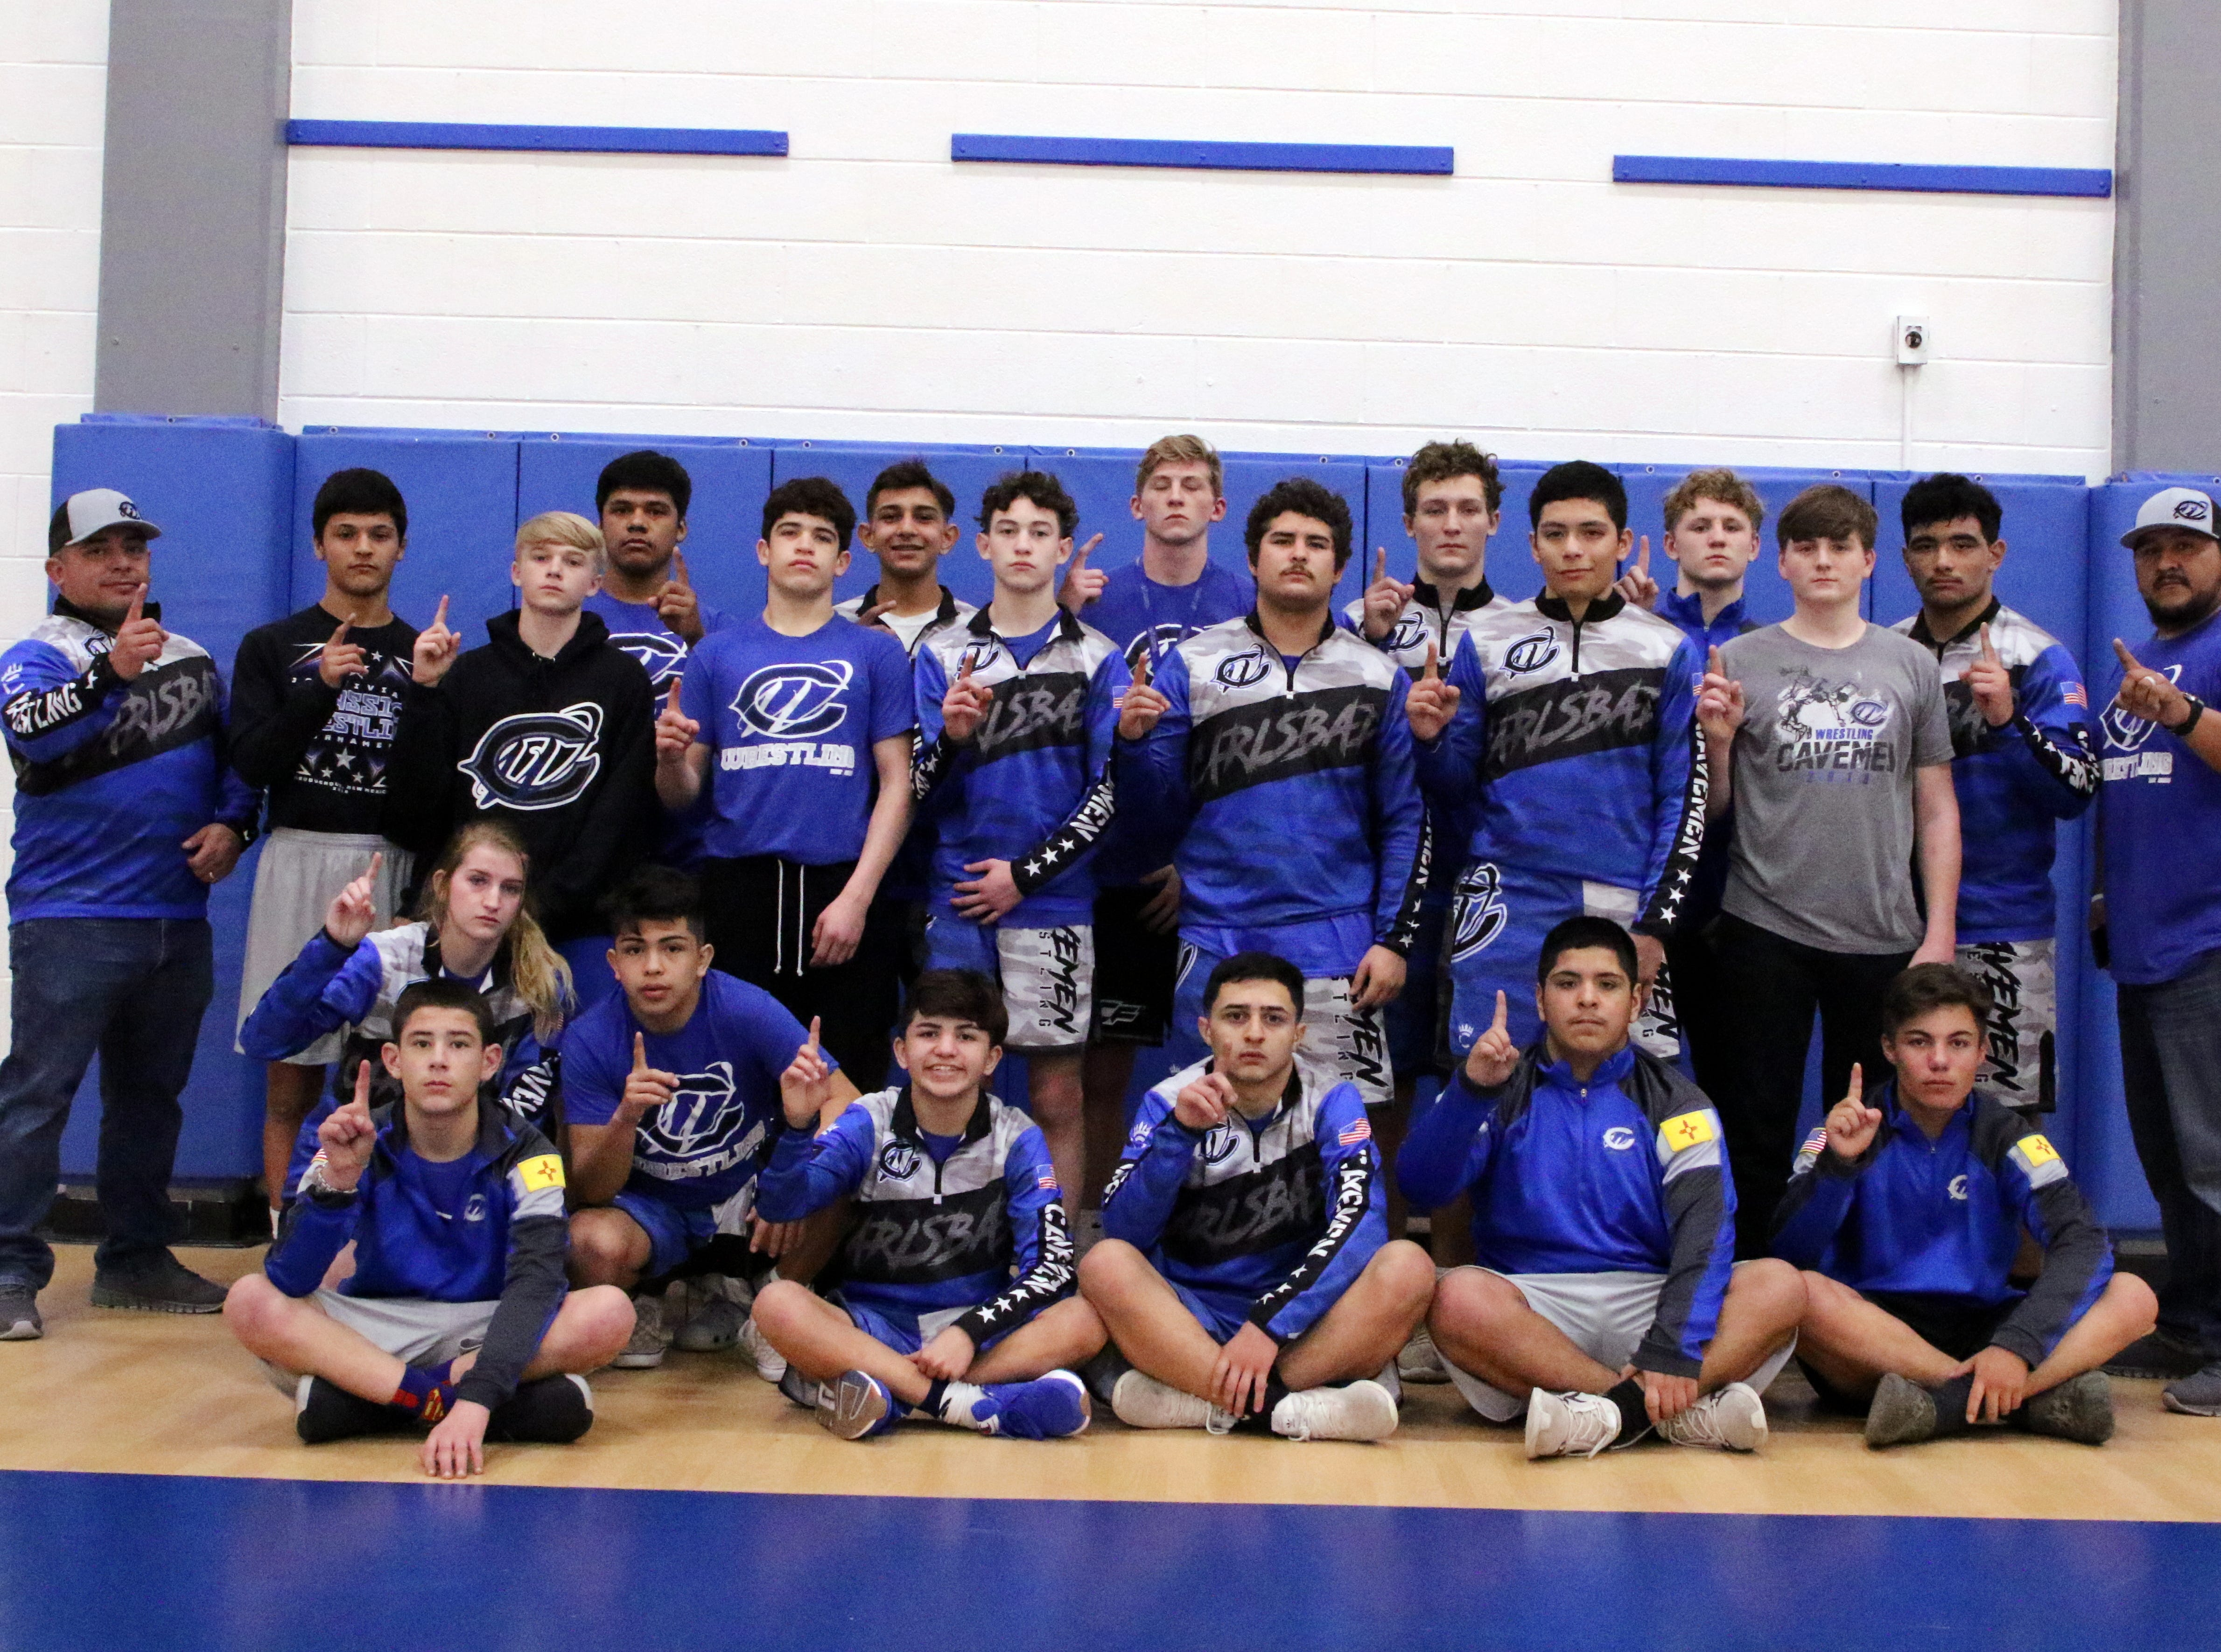 The Cavemen wrestling team poses after Saturday's District Dual in Carlsbad against Alamogordo. The Cavemen won, 84-0 to claim the district title for the second consecutive season.